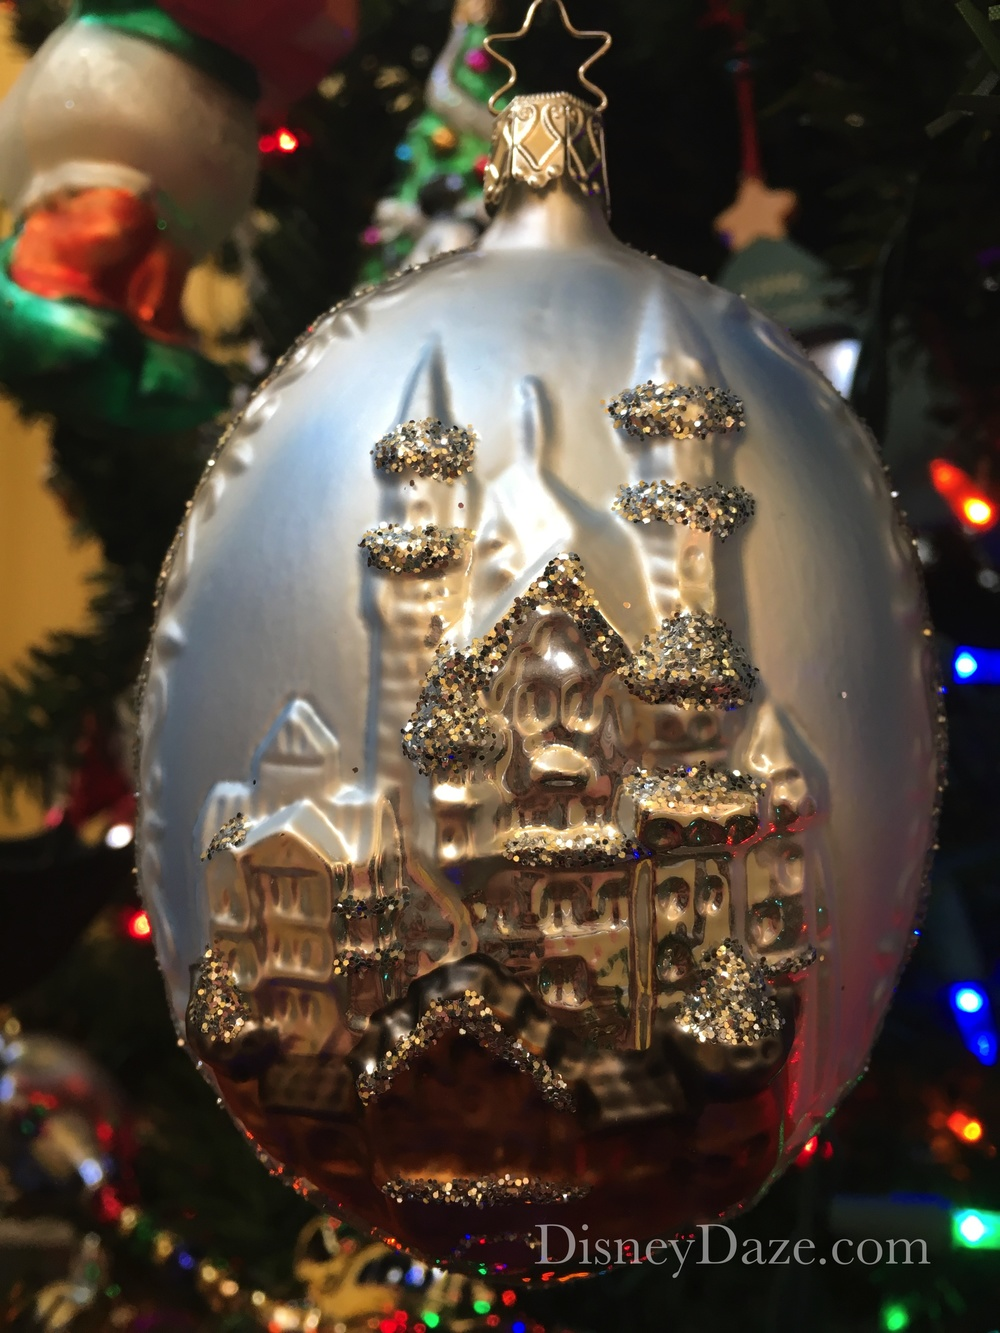 12 days of disney christmas: day 8 - castle ornaments — disneydaze